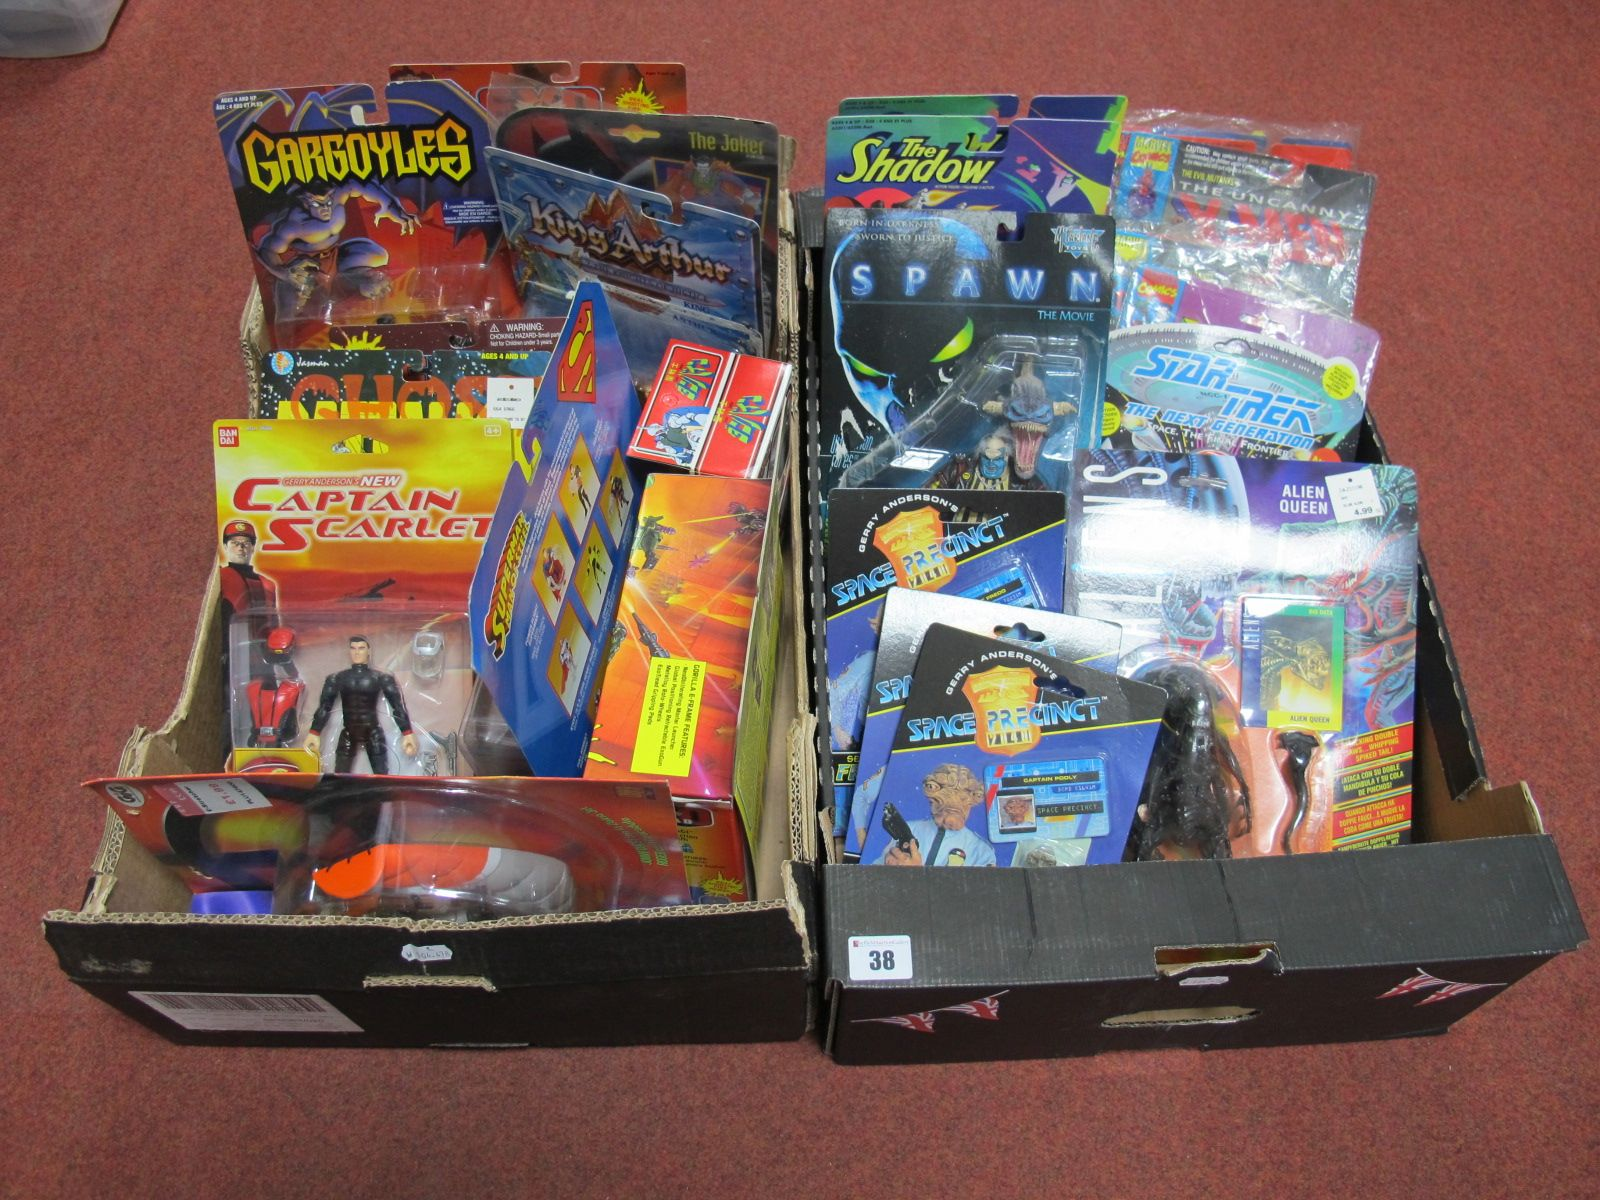 Lot 38 - Two Boxes of Carded Action Figures, including The Shadow, Star Trek, Space Precinct, Exo Squad,